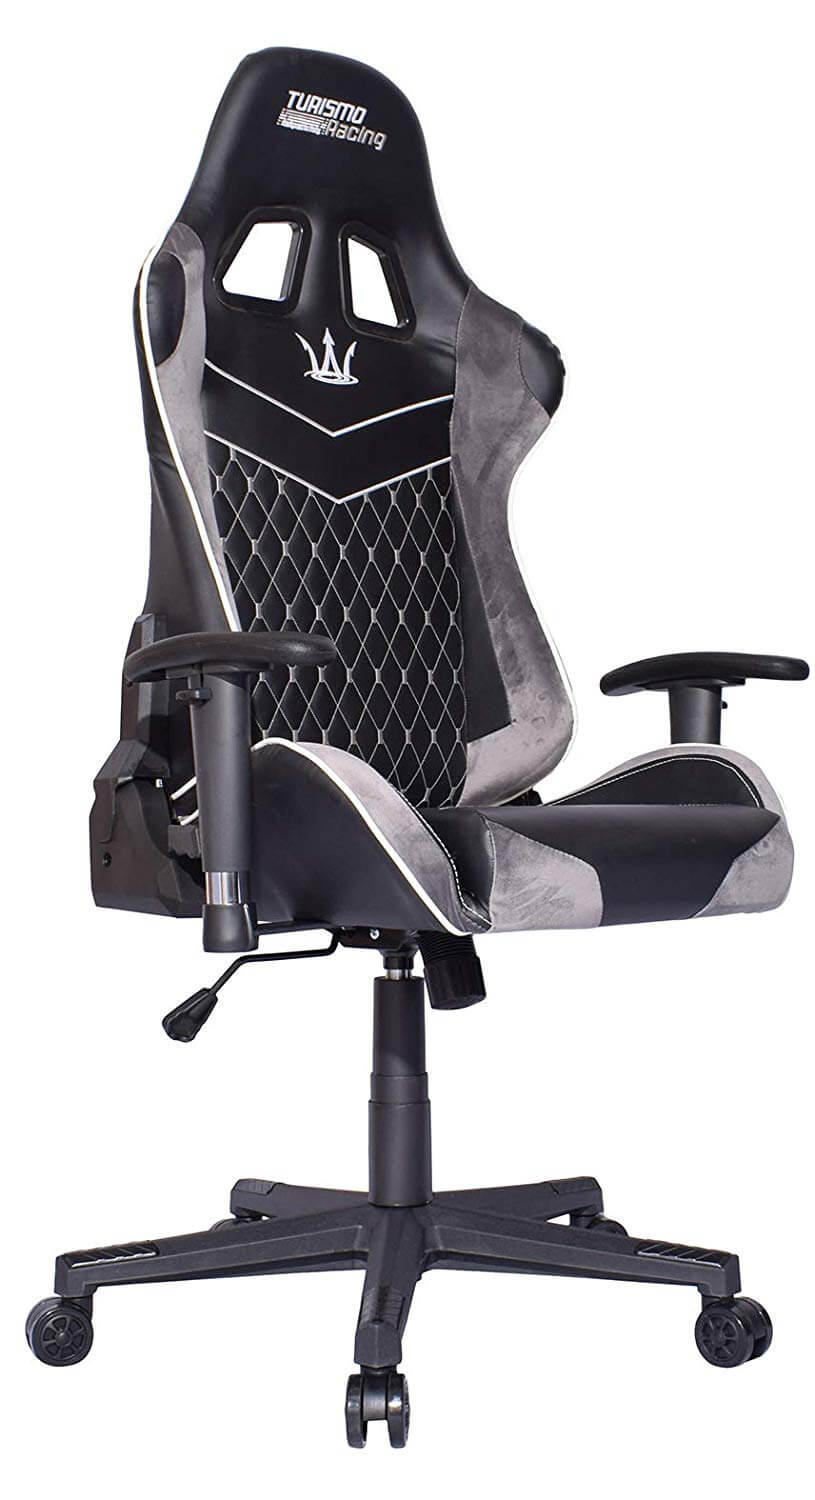 Turismo Racing Gaming Chair Review